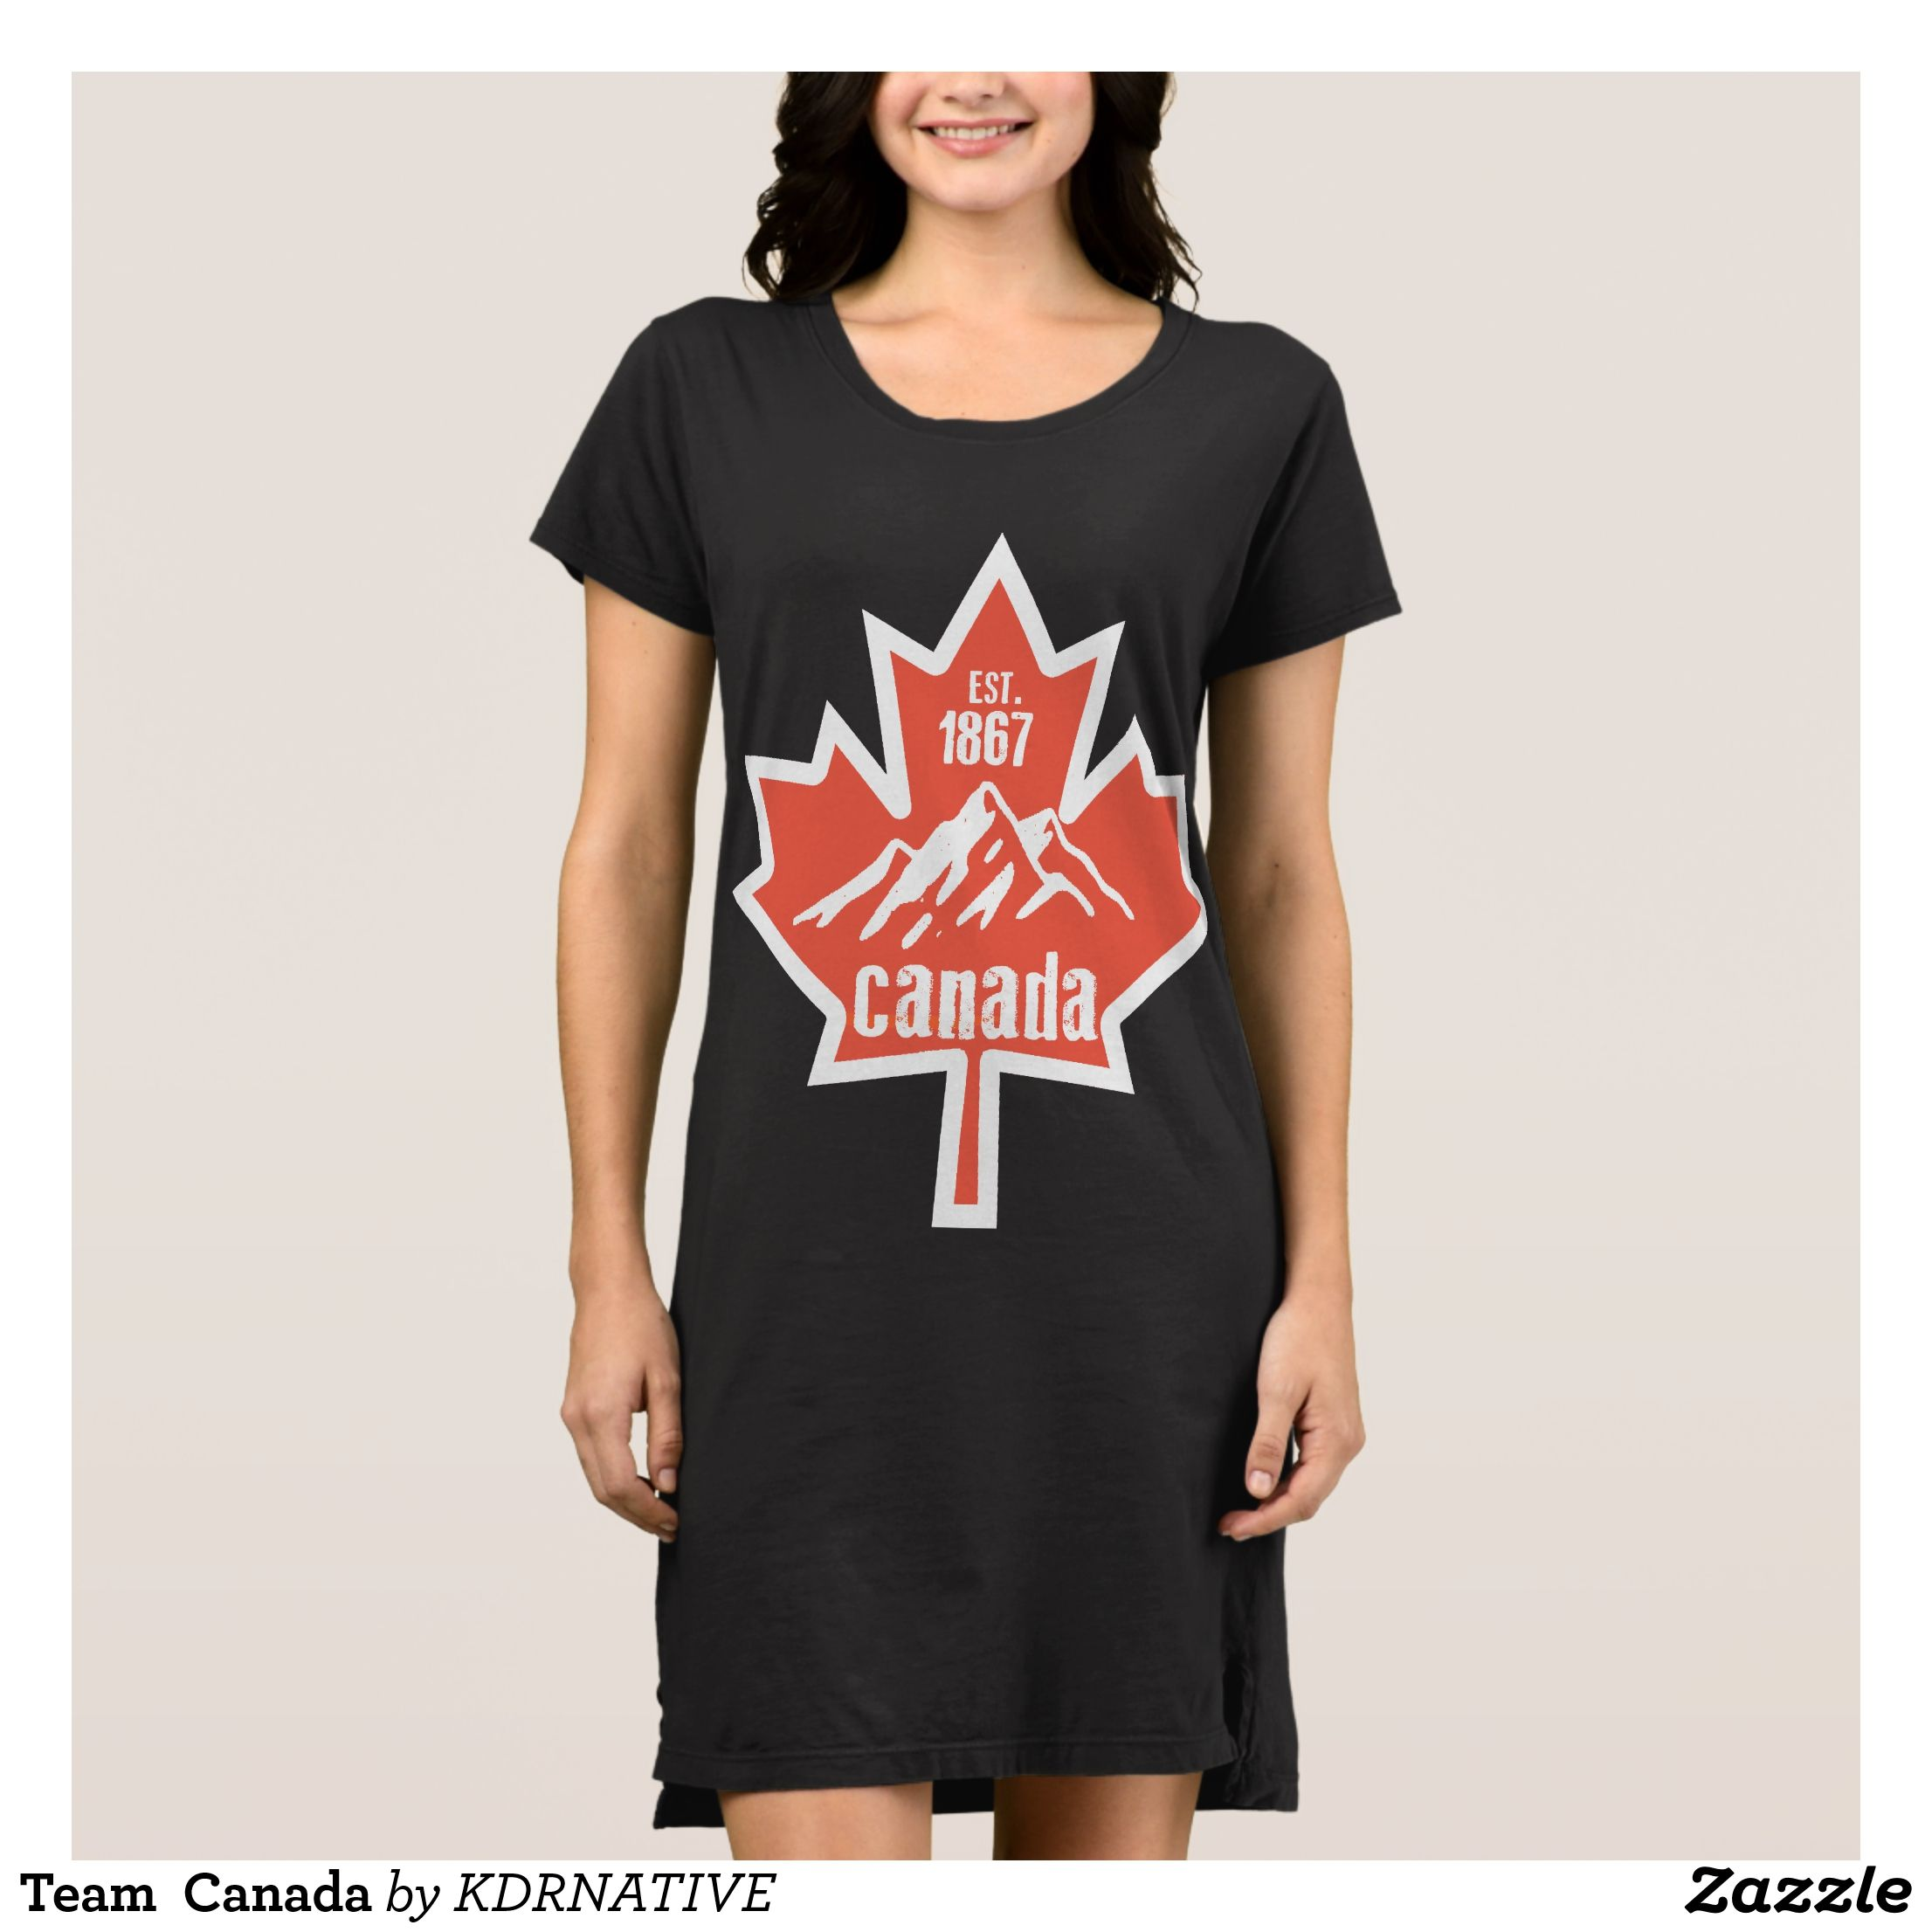 fashion designer cover letter%0A Team Canada Dress  Fashionable Women u    s Dreses By Creative Talented Graphic  Designers   dresses